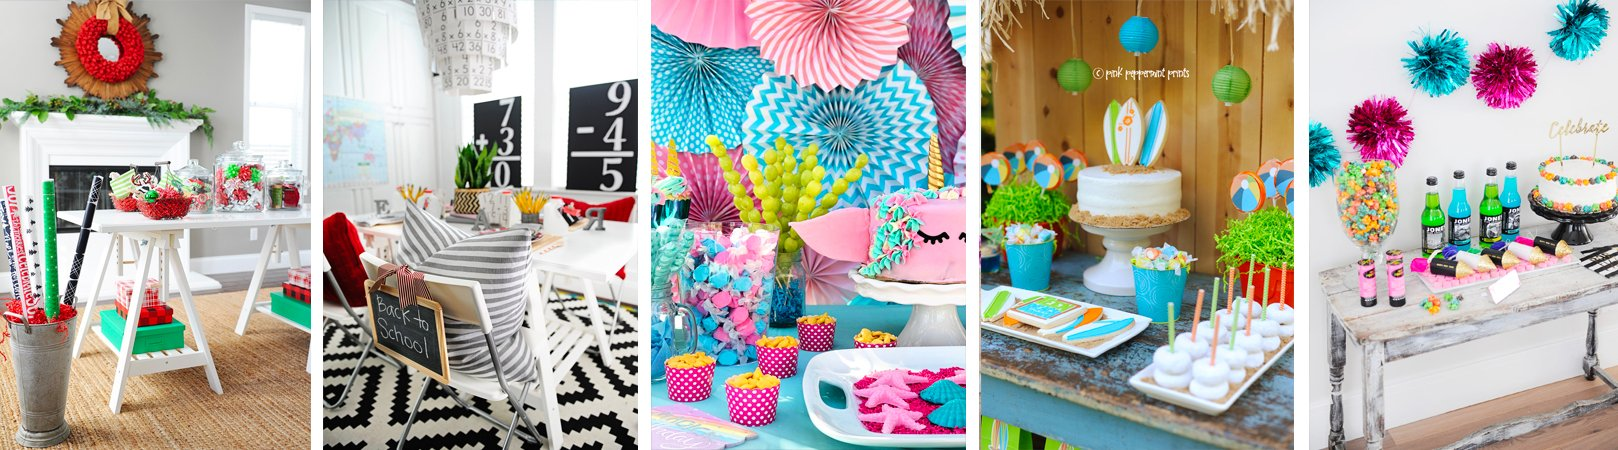 Party ideas collage footer 2